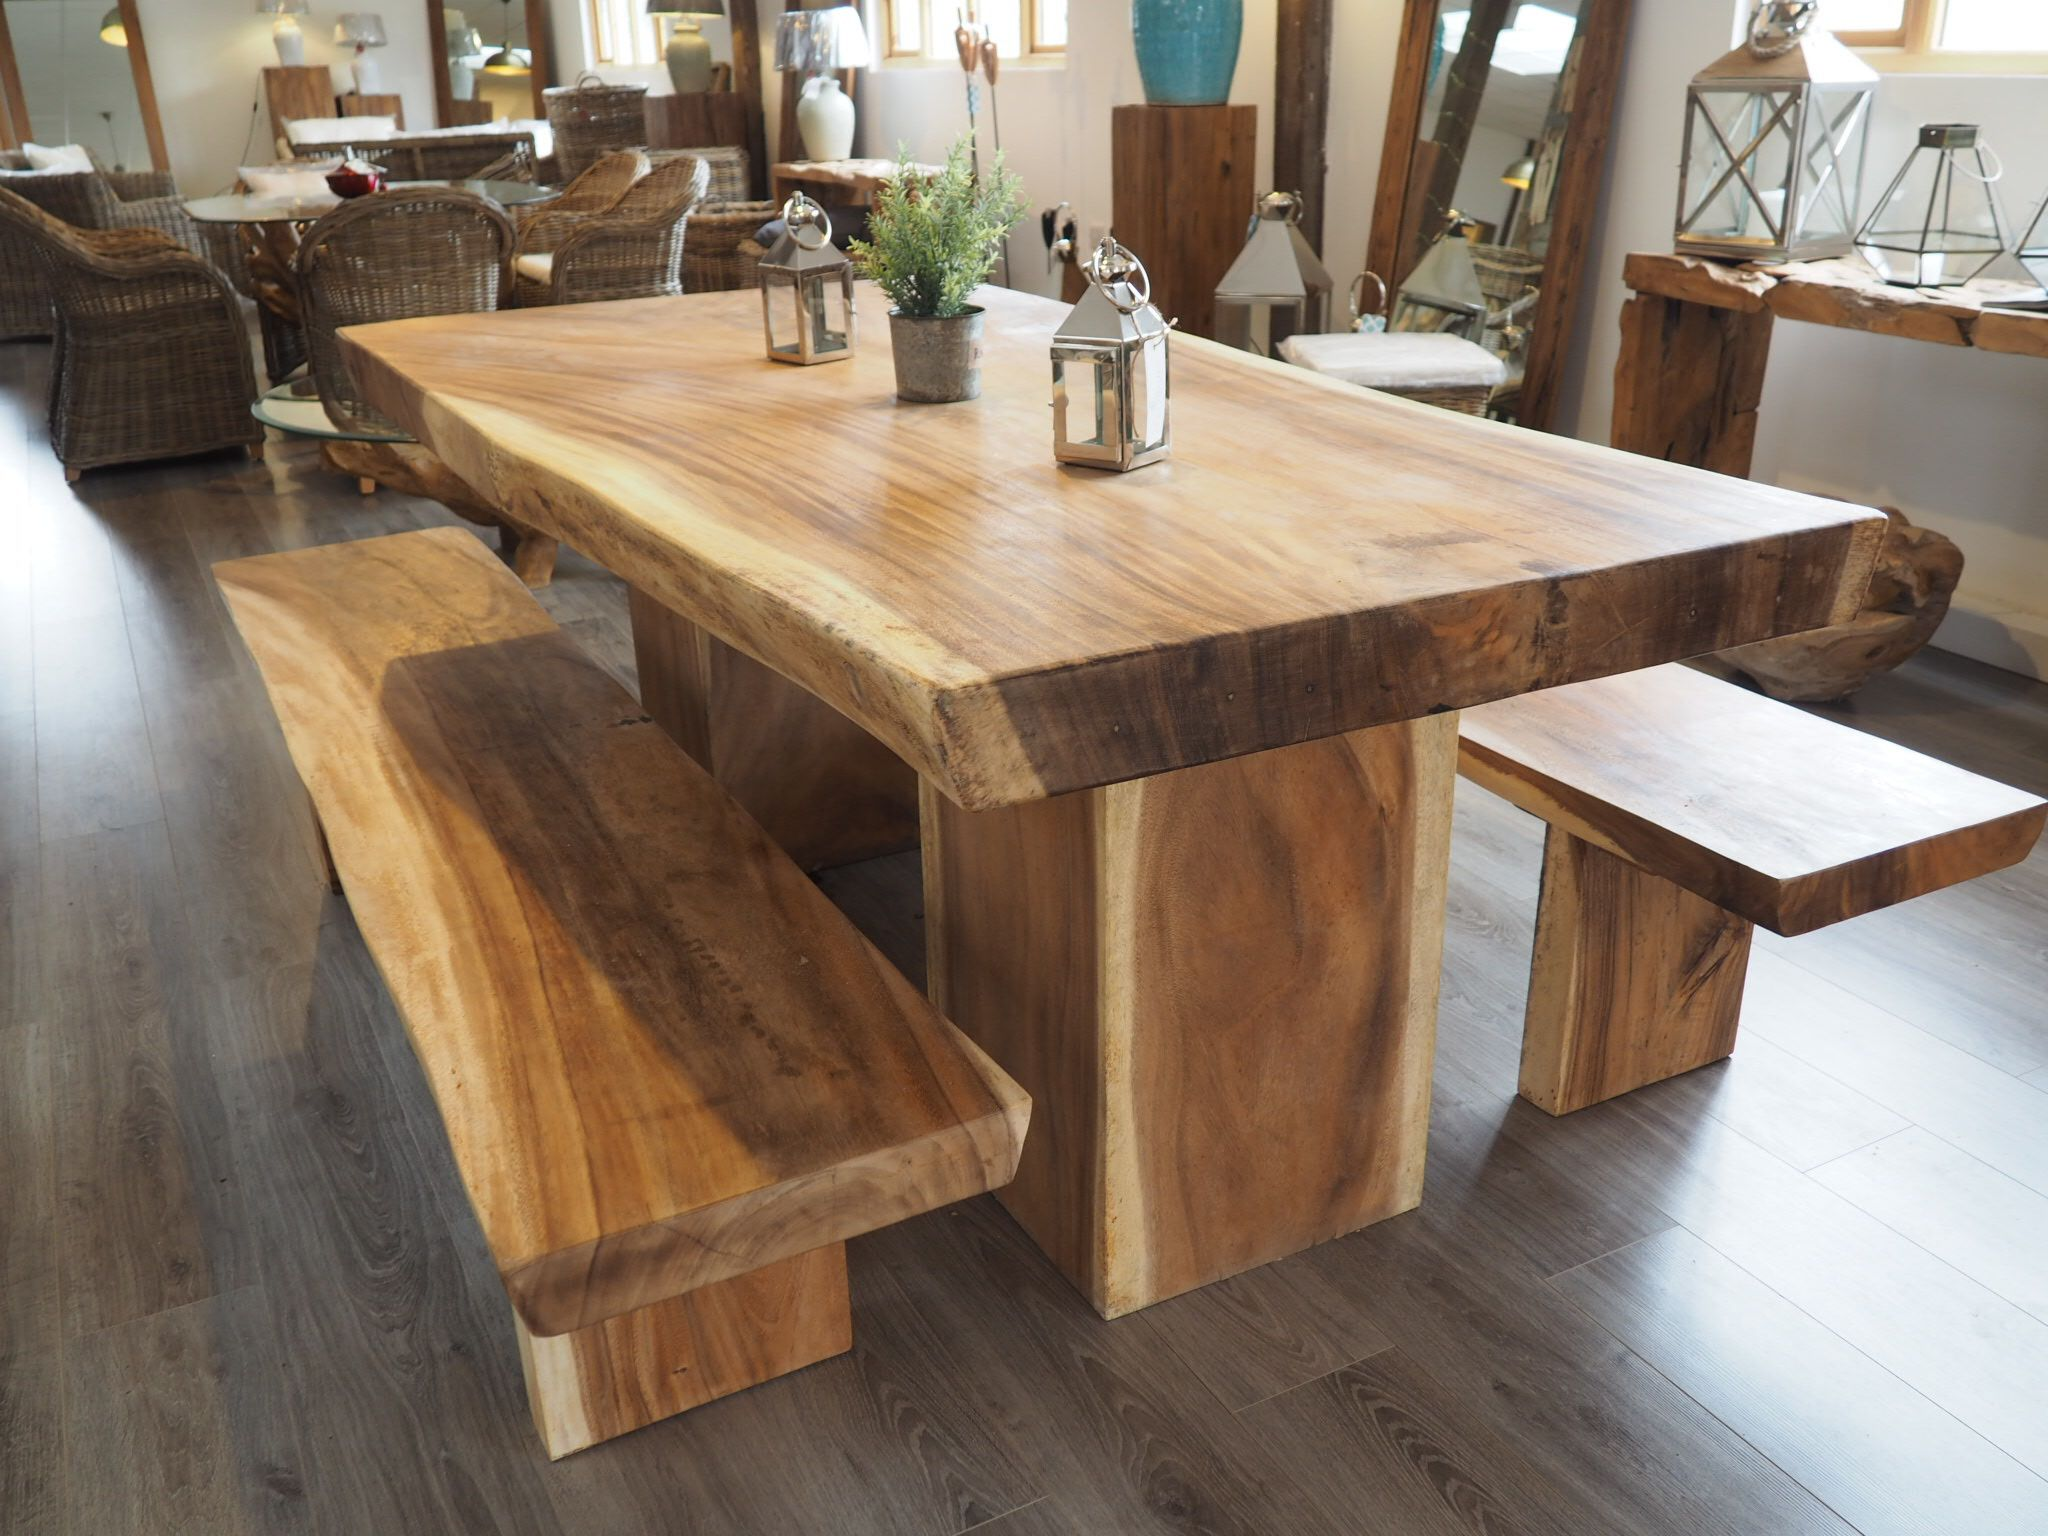 Magnificently Elegant Suar Wood Solid Dining Table Incredible Individuality In The Colour Of The Wood Diy Dining Room Table Wood Dining Table Diy Dining Table